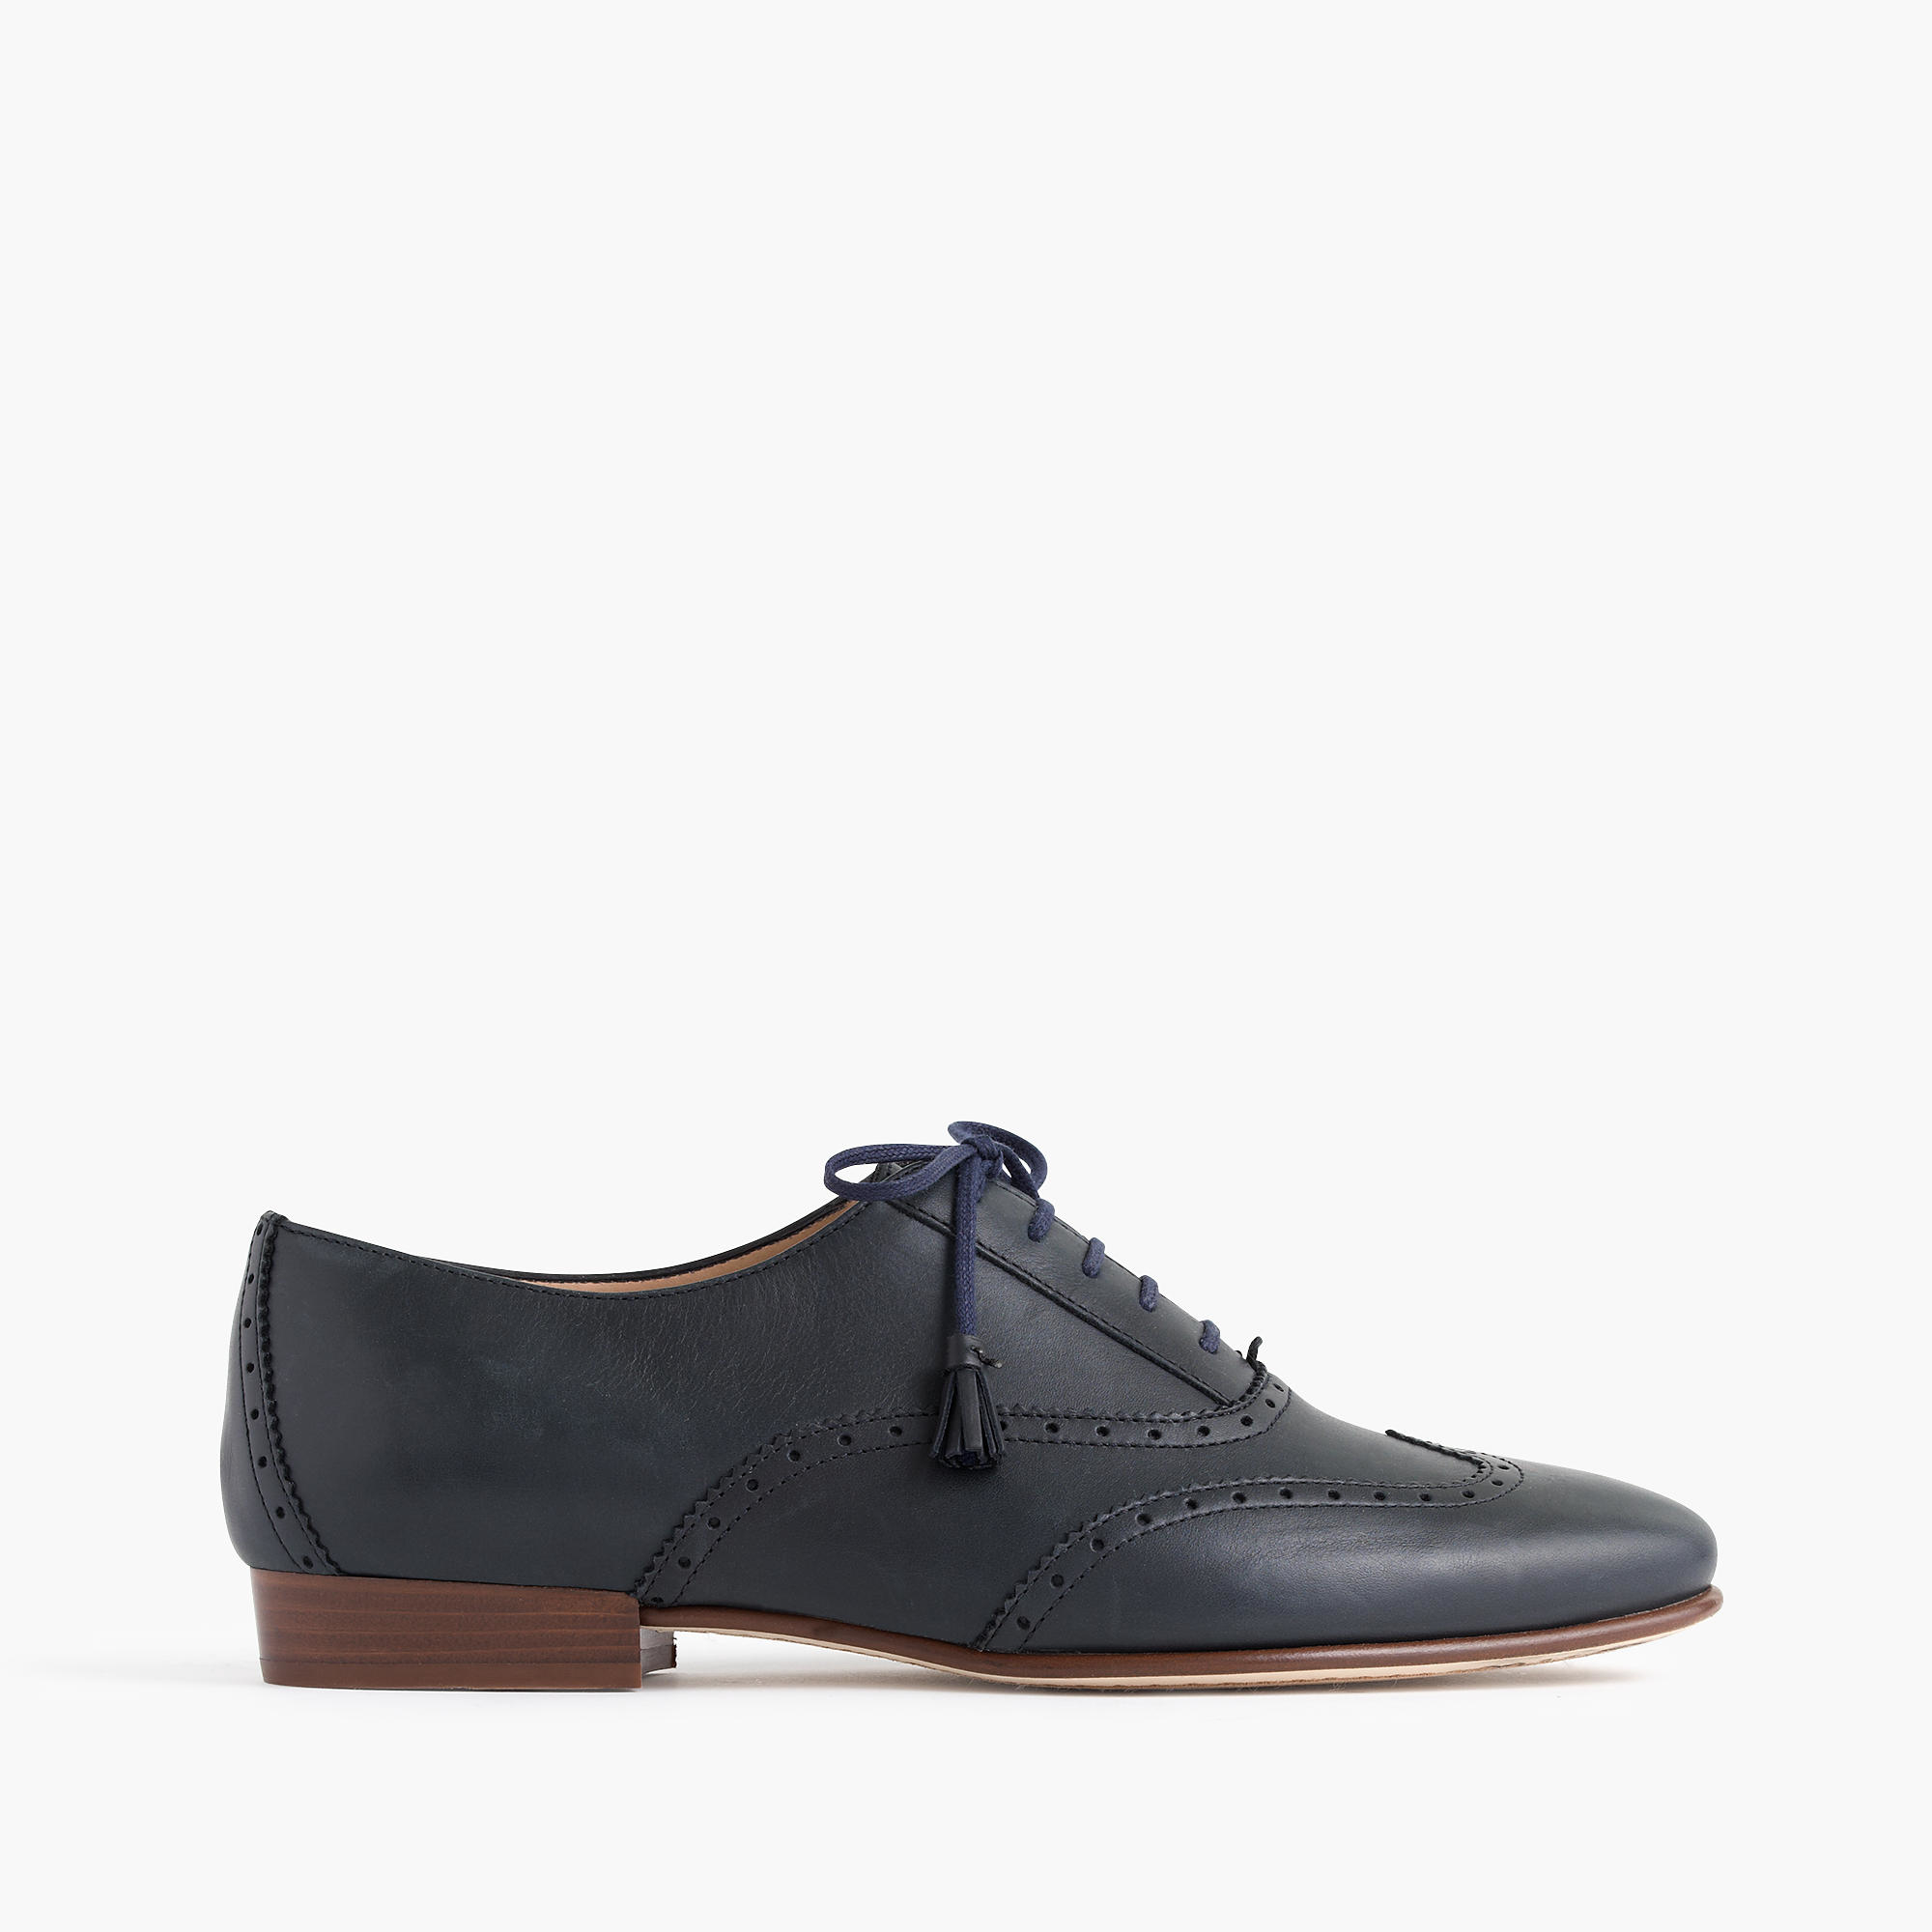 J.crew Tasseled Oxford Shoes In Blue | Lyst